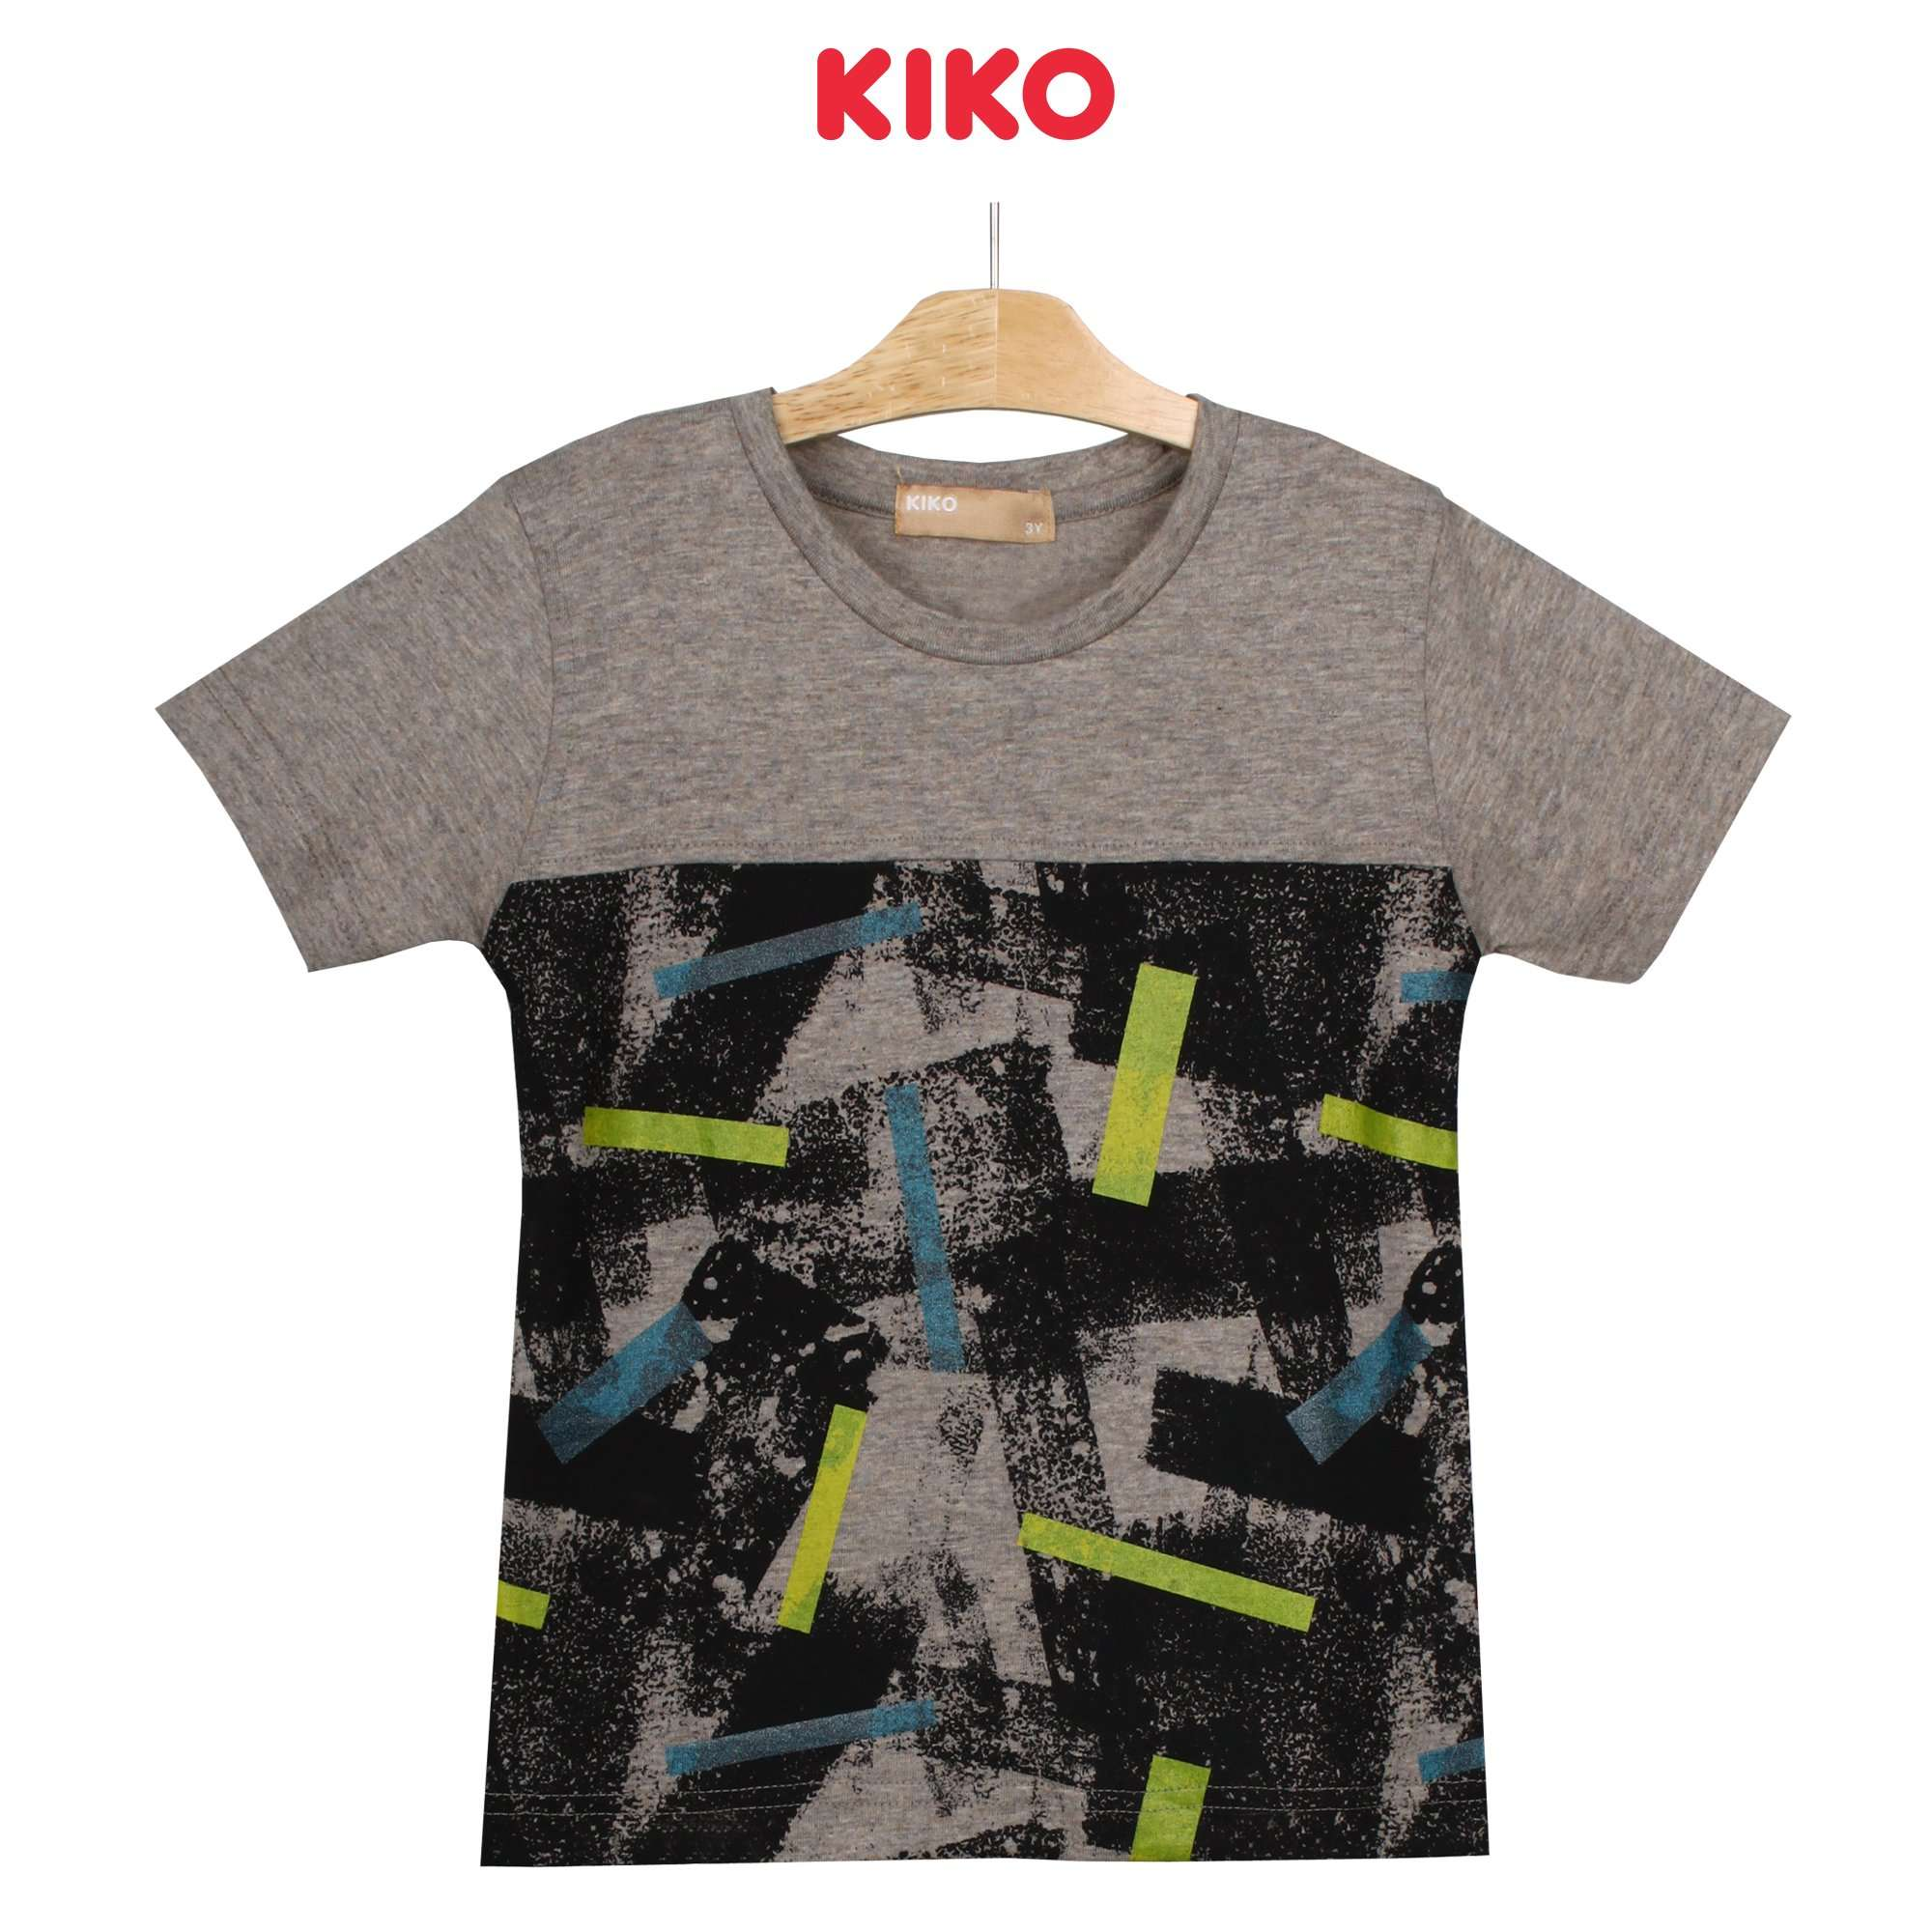 KIKO Boy Short Sleeve Tee - Grey Bleached Sand 130091-111 : Buy KIKO online at CMG.MY